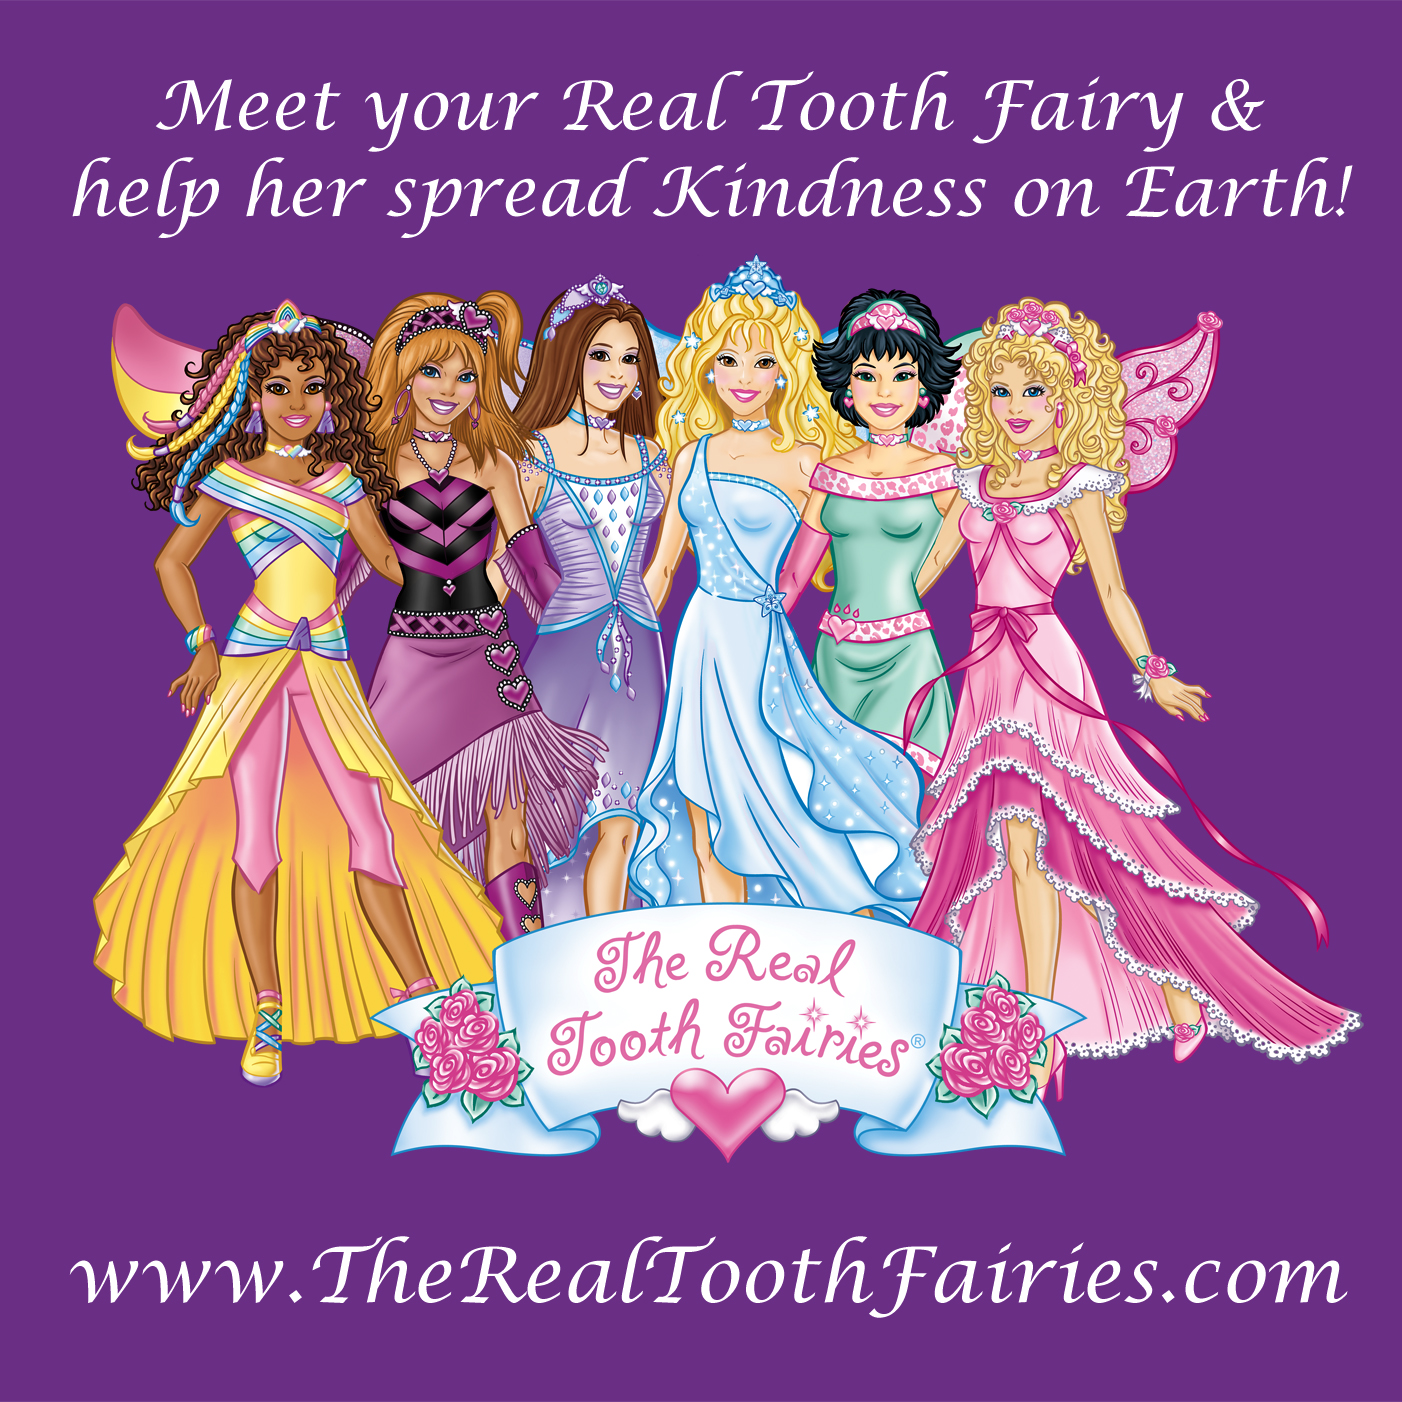 the real tooth fairies u0027 website wants money from the imaginary